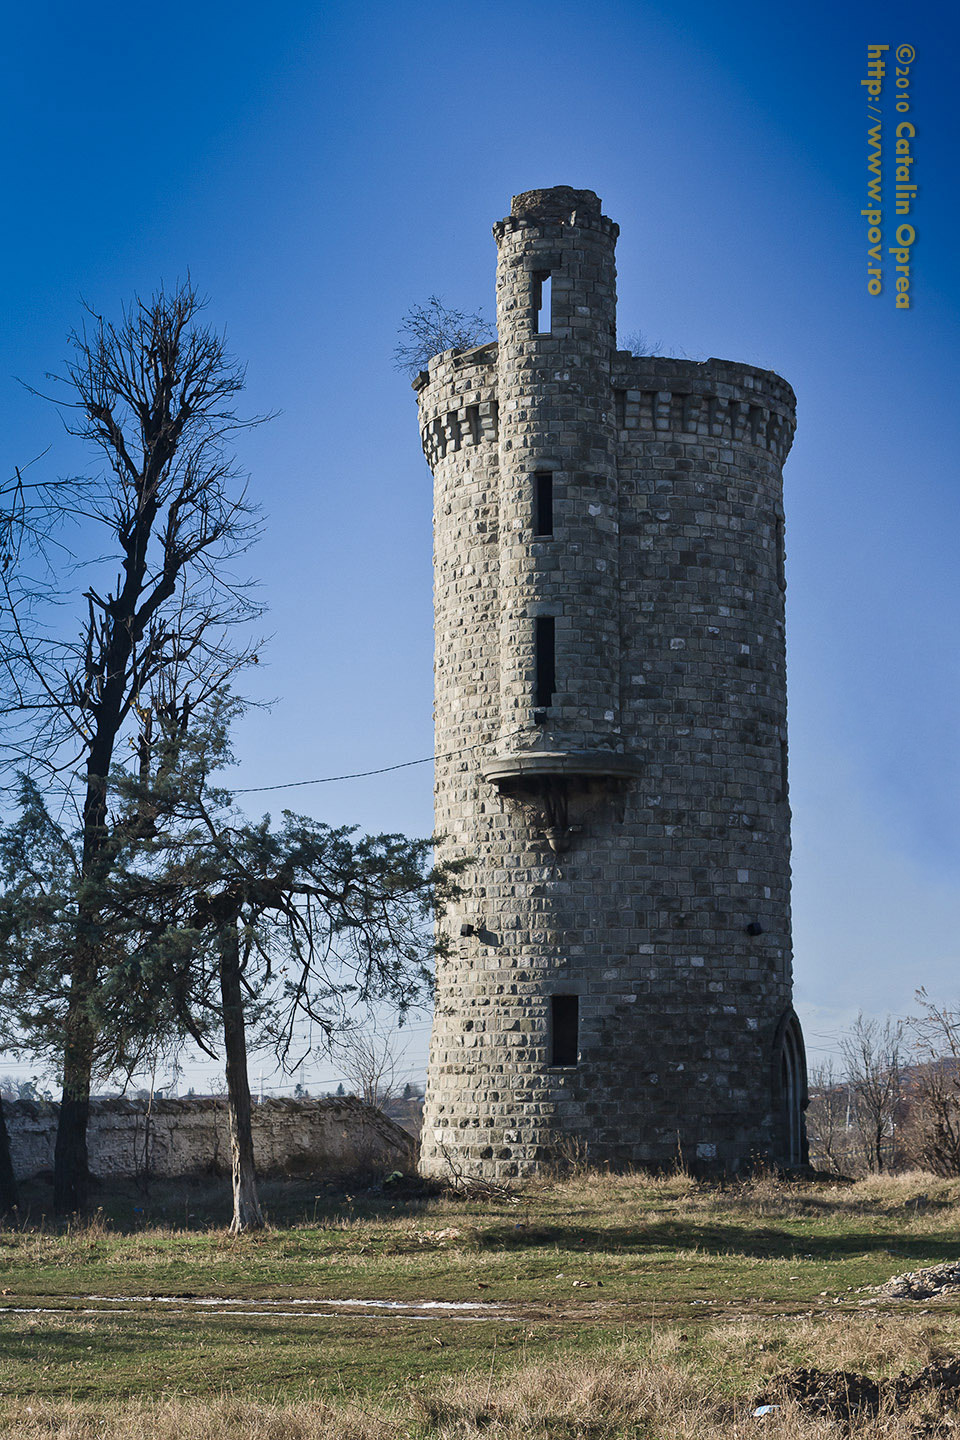 Floresti-tower-IMG_6215.jpg